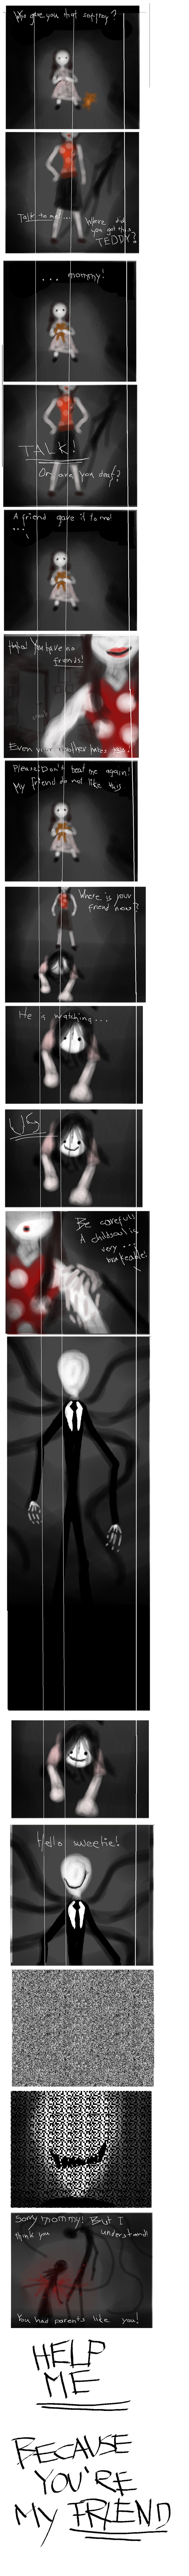 Slenderman-Comic: The little girl by MumbleCat